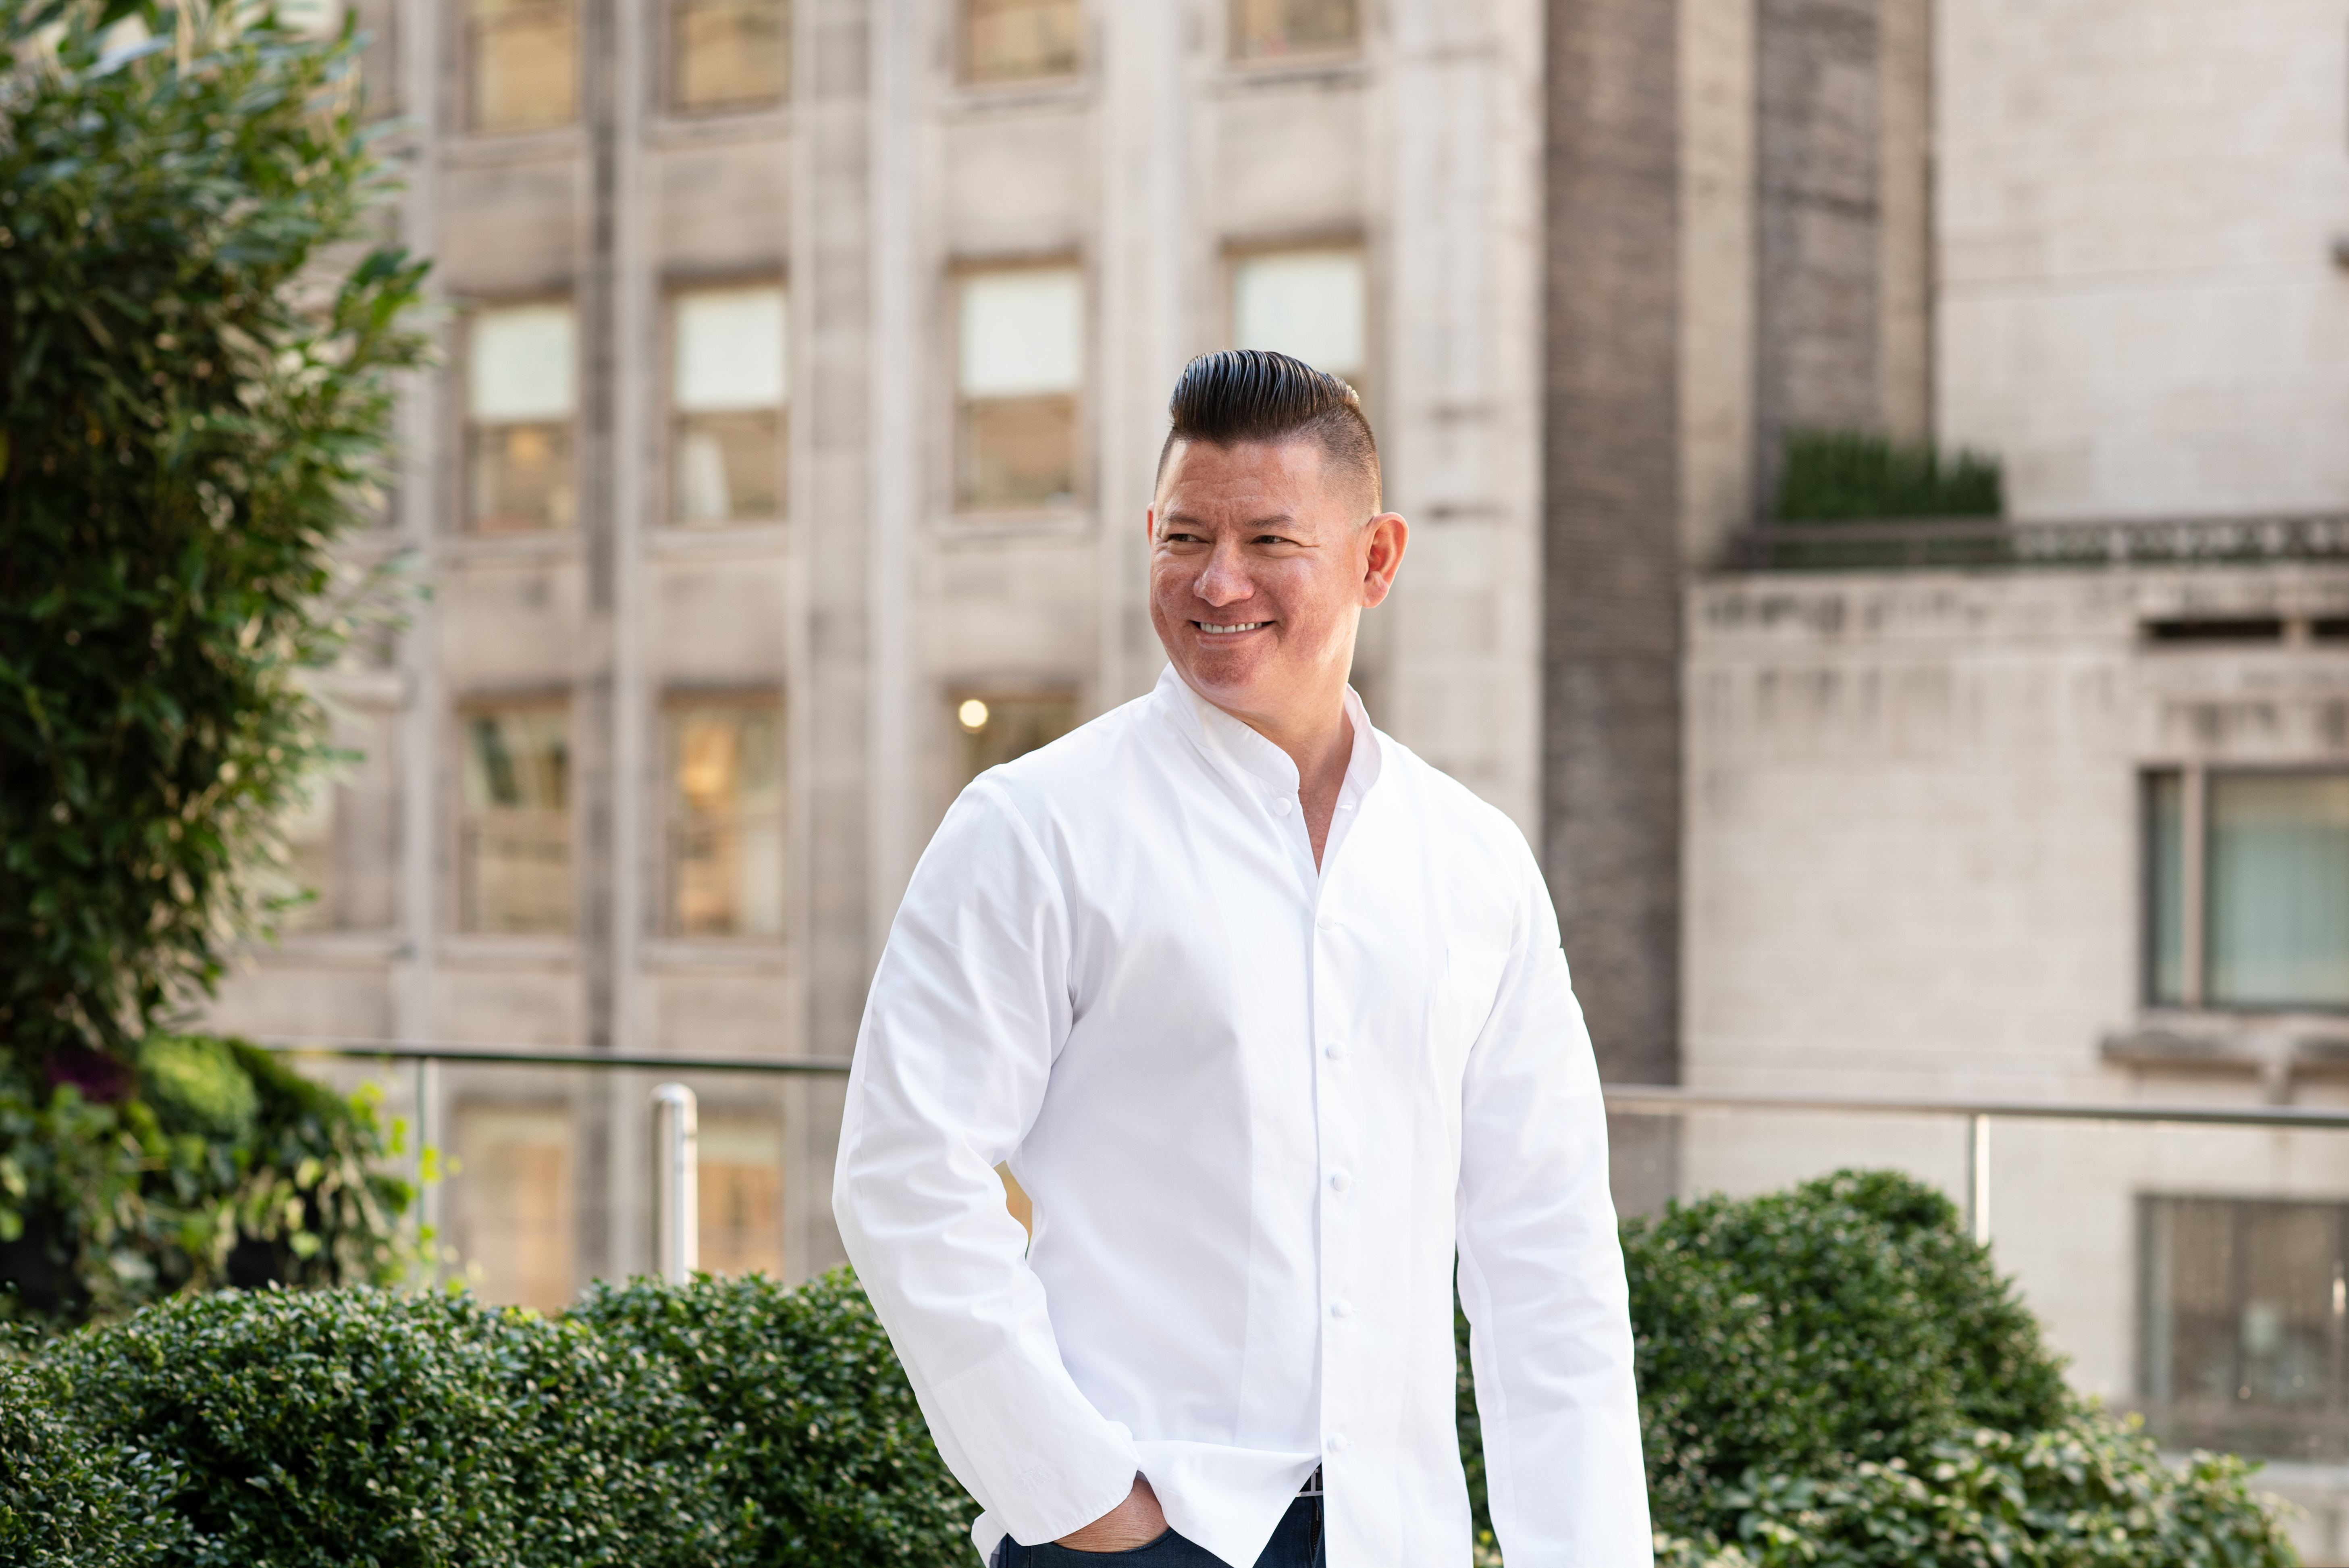 A man in a white shirt smiling and looking away from the camera and standing on a terrace with trees